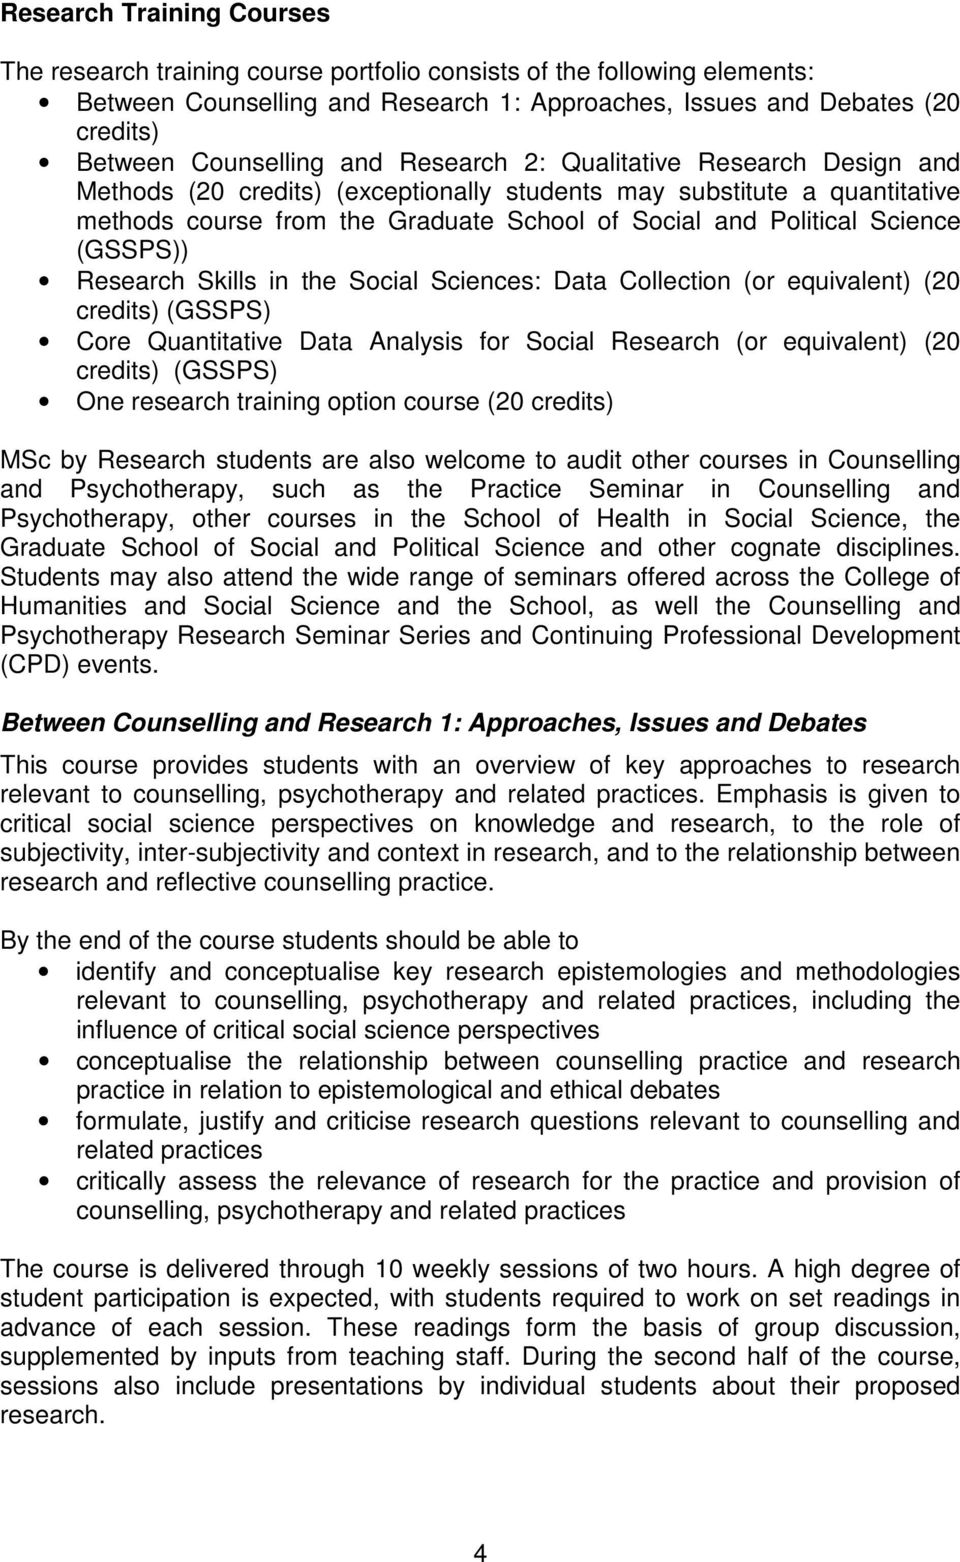 Science (GSSPS)) Research Skills in the Social Sciences: Data Collection (or equivalent) (20 credits) (GSSPS) Core Quantitative Data Analysis for Social Research (or equivalent) (20 credits) (GSSPS)